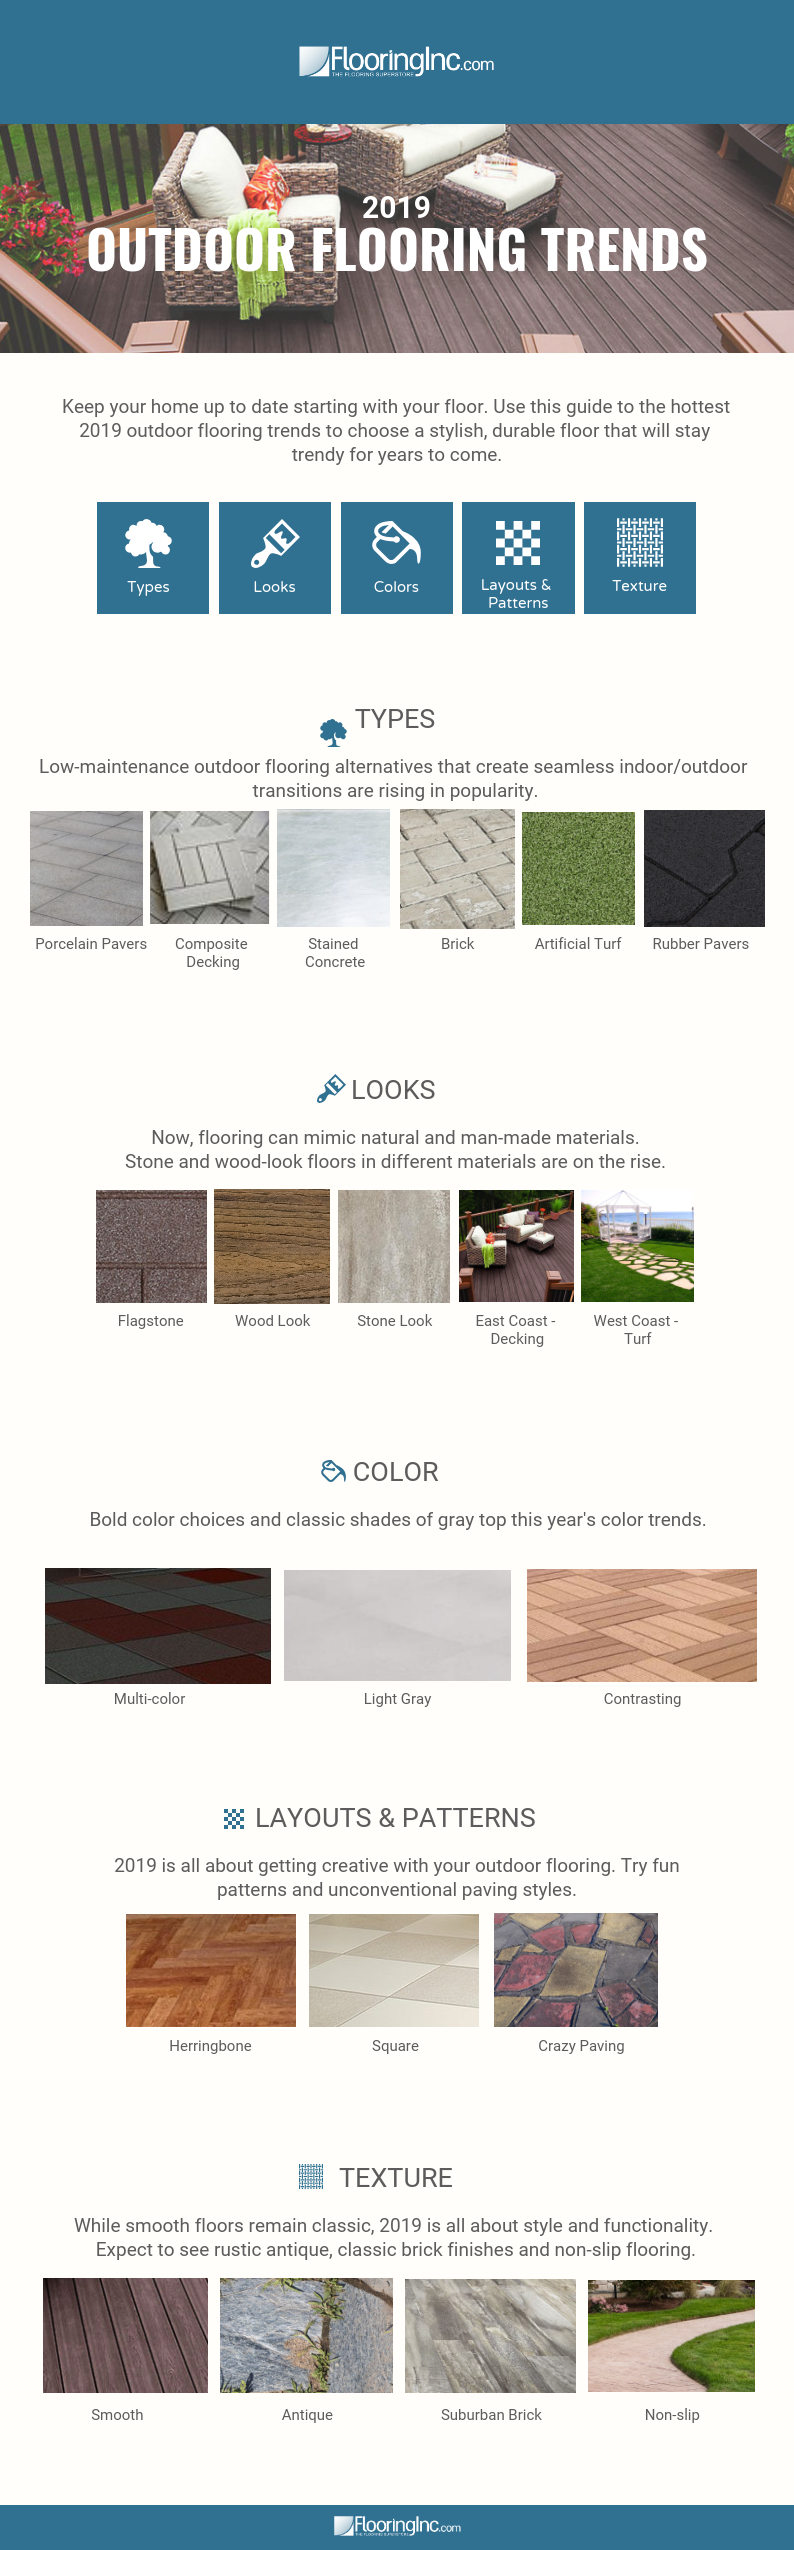 Your guide to the hottest 2019 outdoor flooring trends - keep your home up to date starting with a stylish, durable floor.